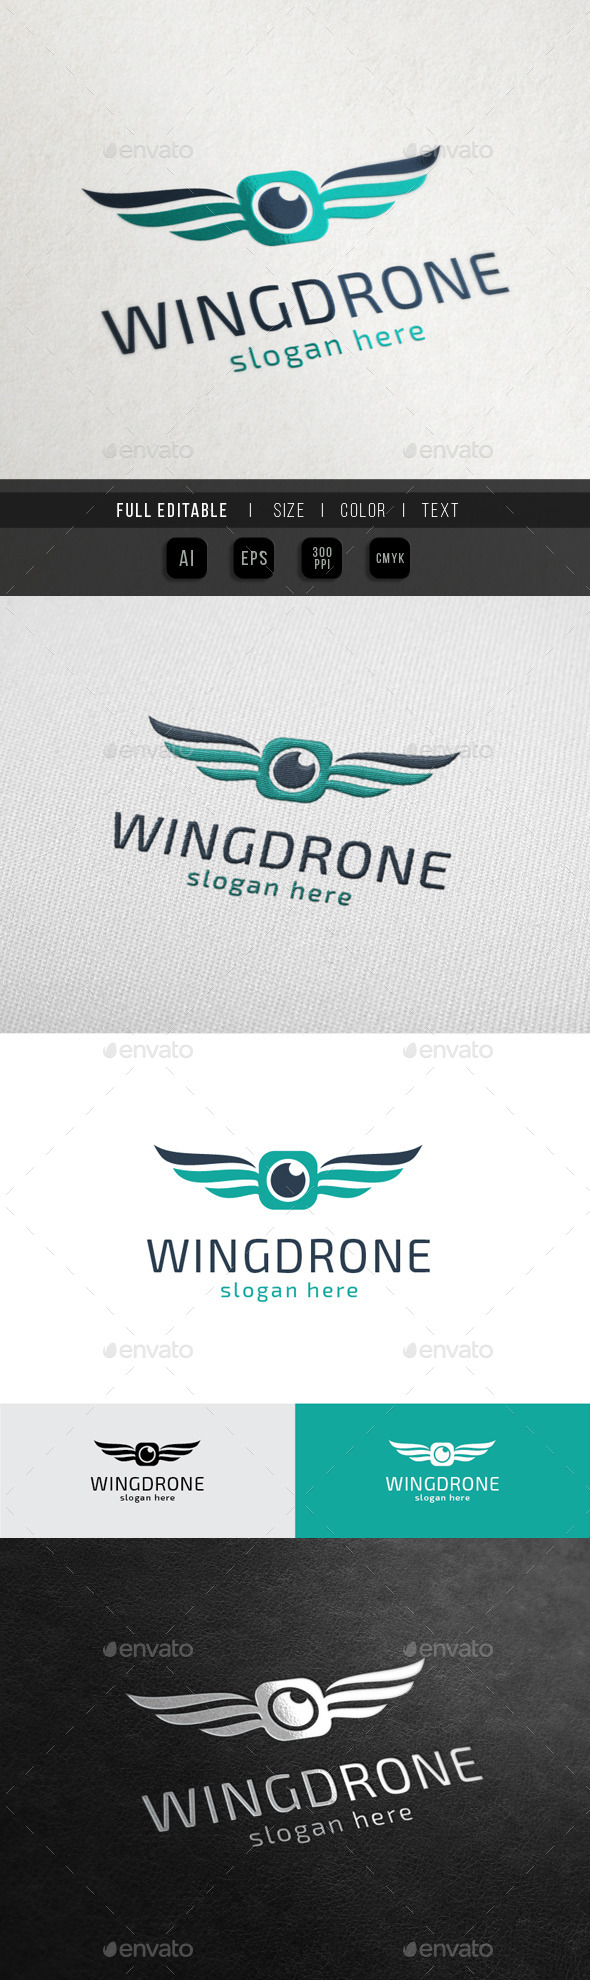 Wing Drone - Sky Camera - Objects Logo Templates